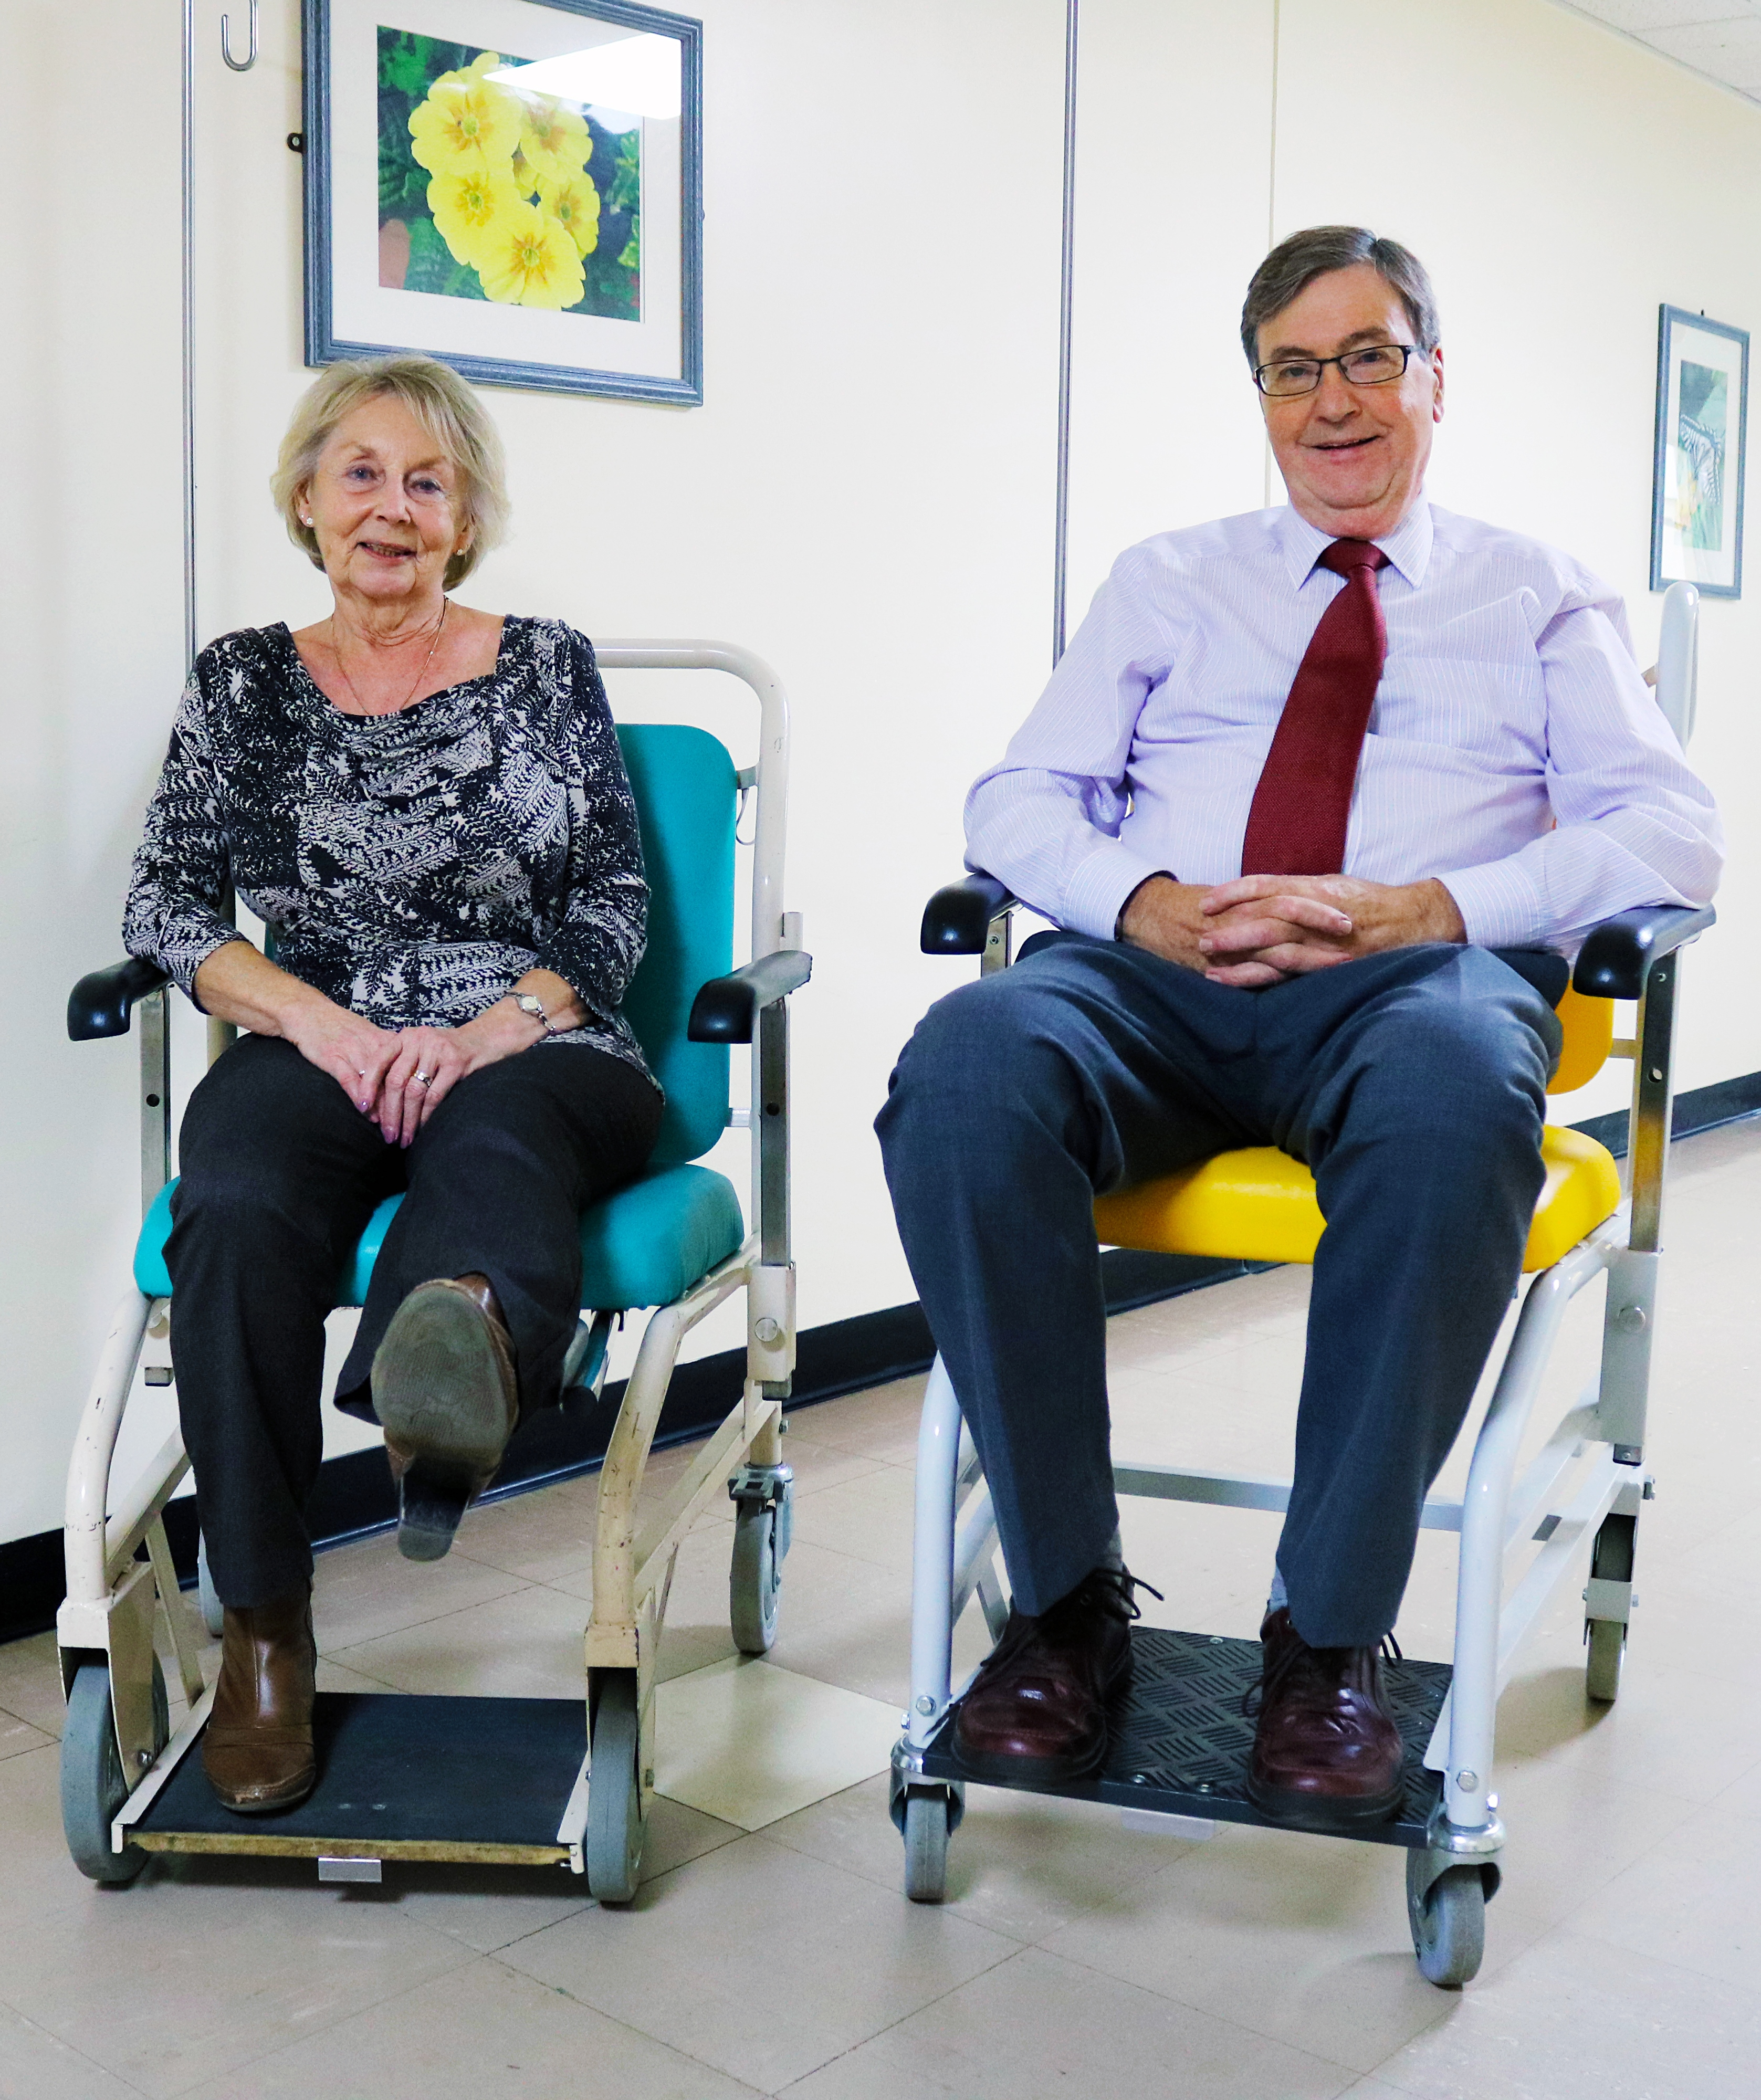 Older patients using wheelchairs